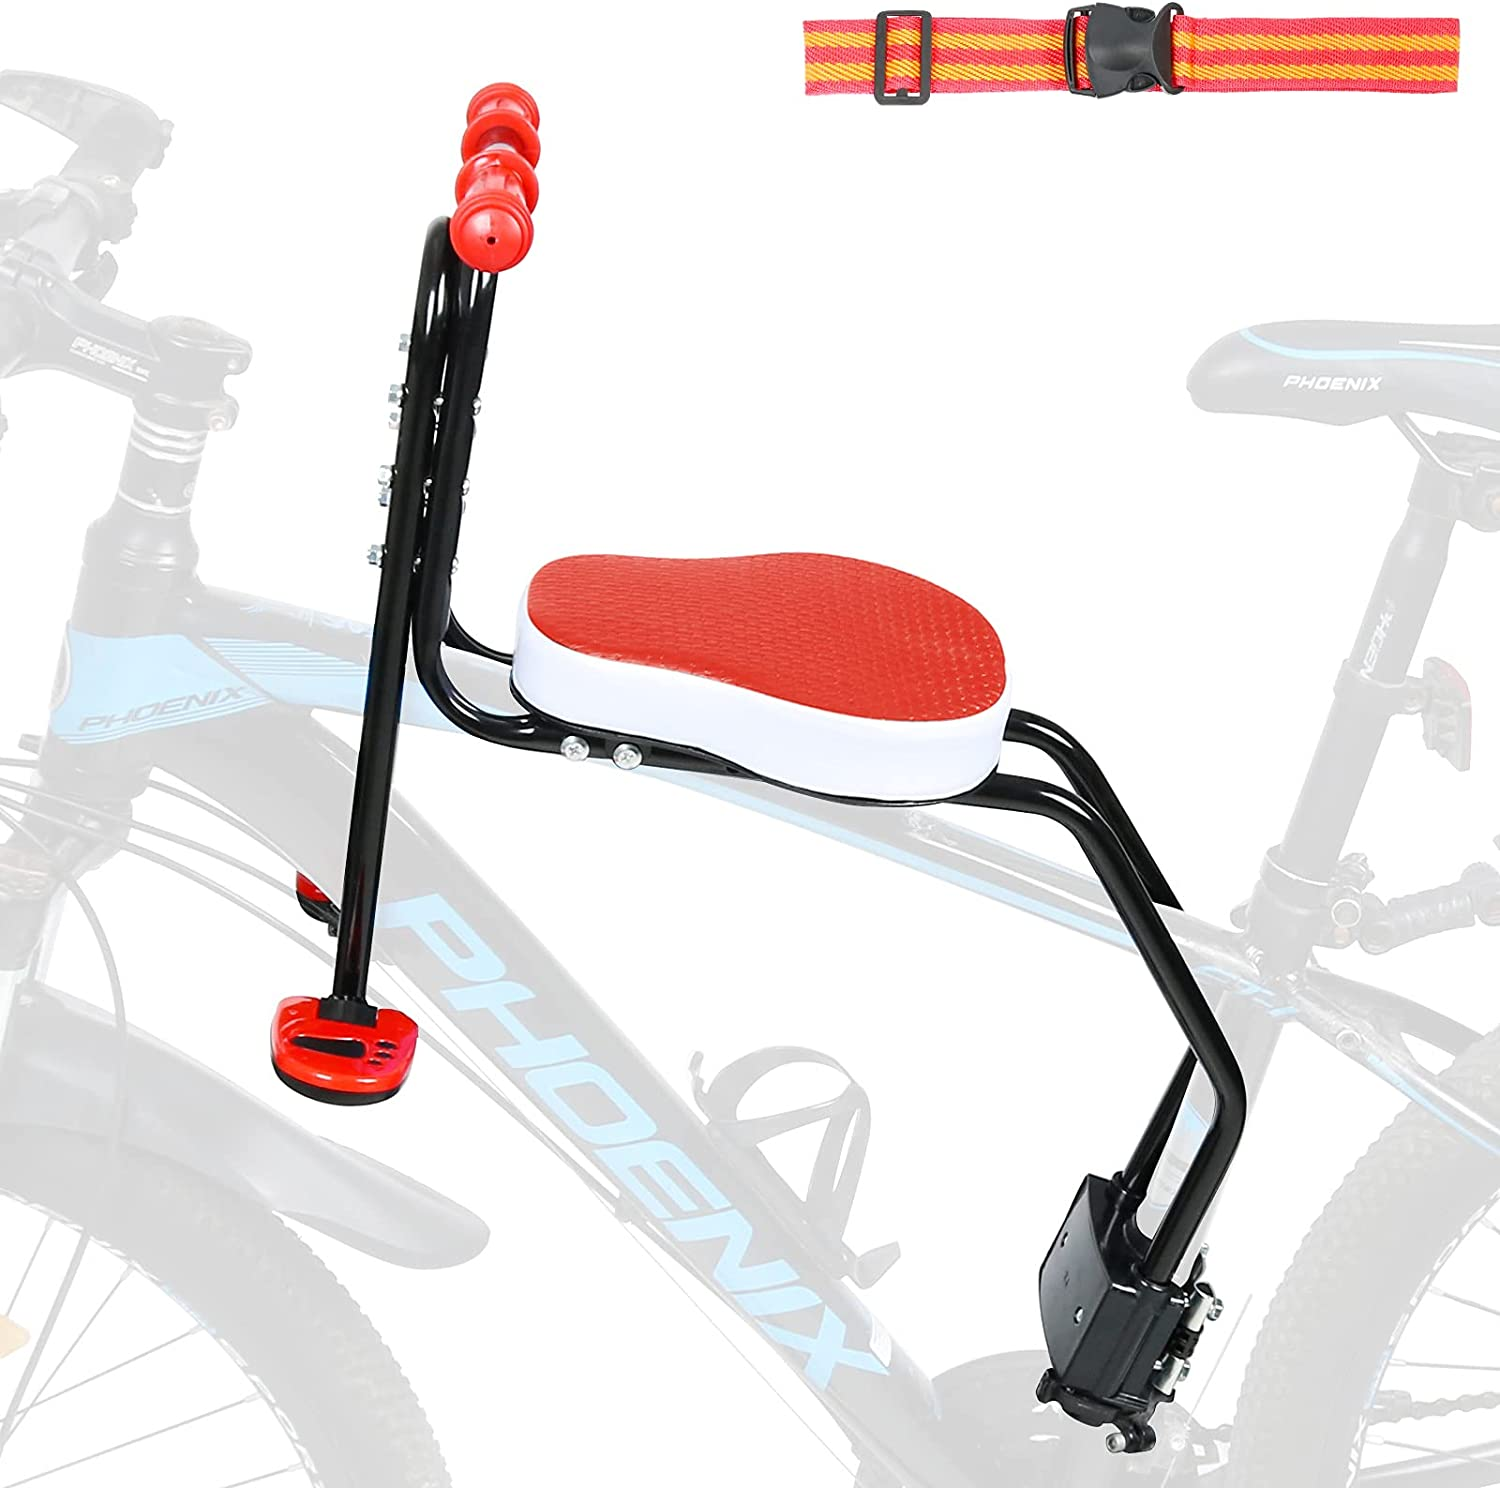 INNOLIFE Child Bike Seat, Kids Bicycle Seat Front Mounted Child Bike Carrier with Handrail & Foldable Pedals for 3-6 Years Children, Kids,Toddlers